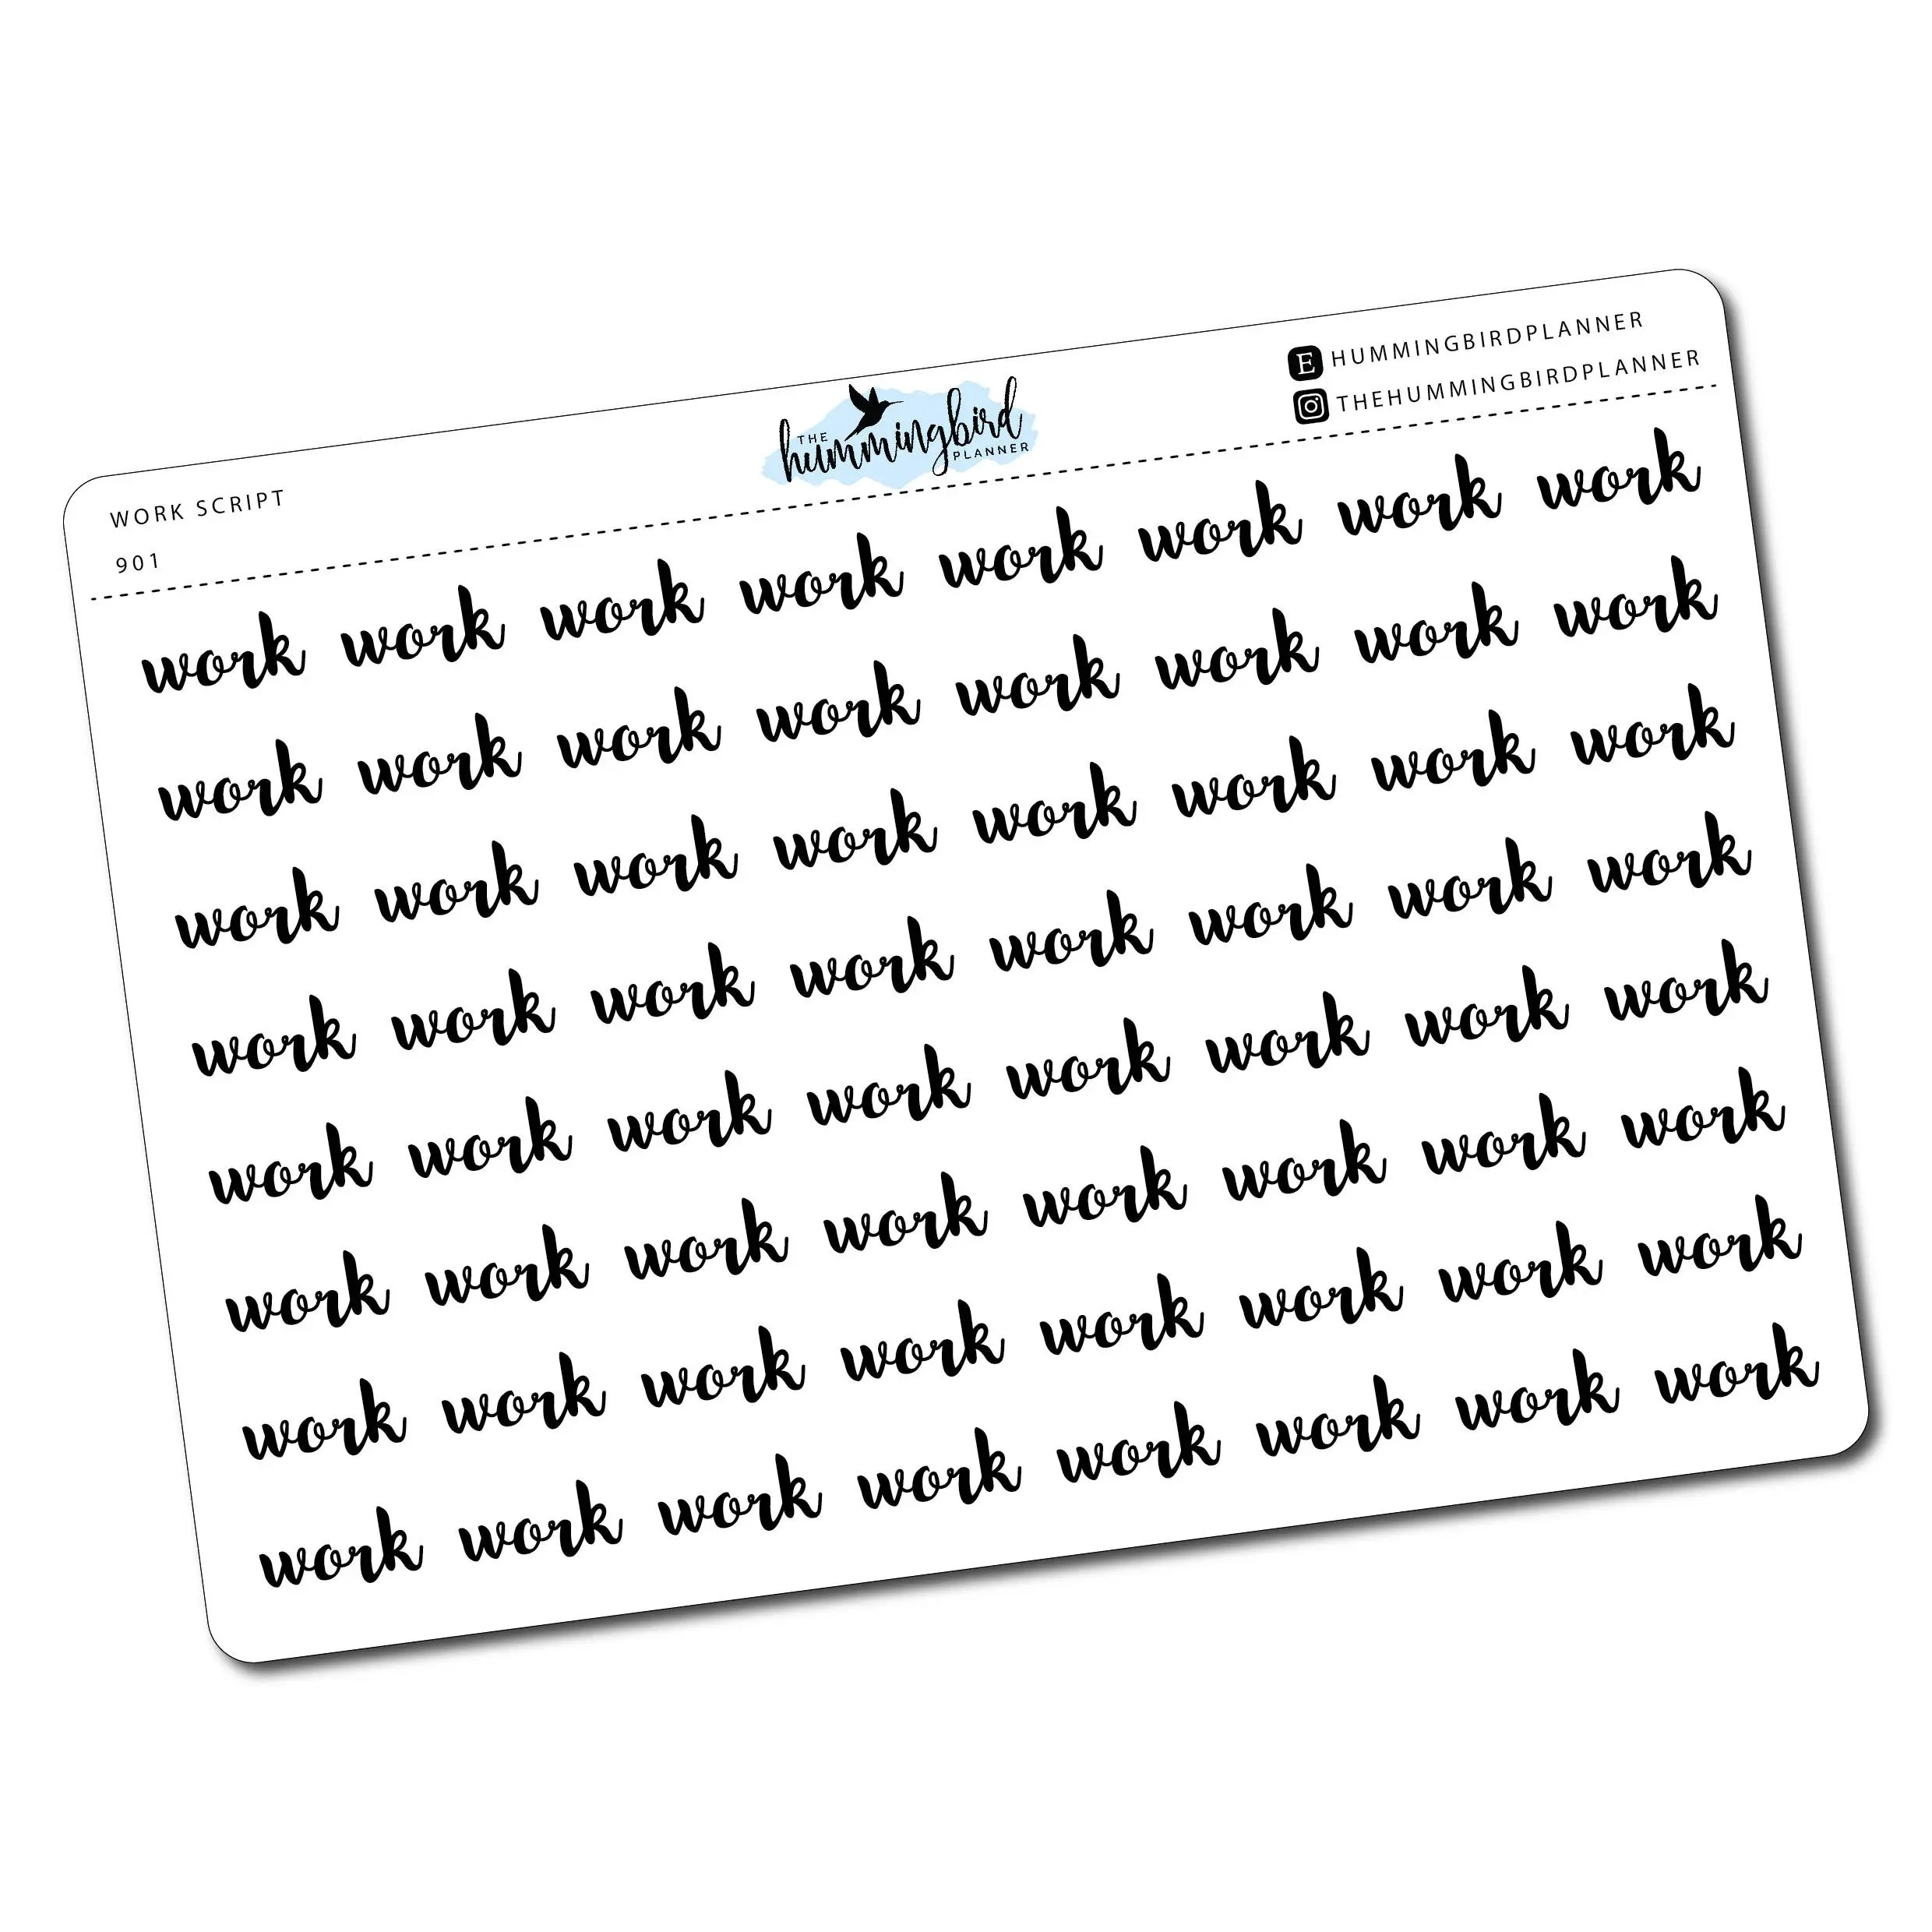 Work Script 901 Planner Stickers for MAMBI and Erin